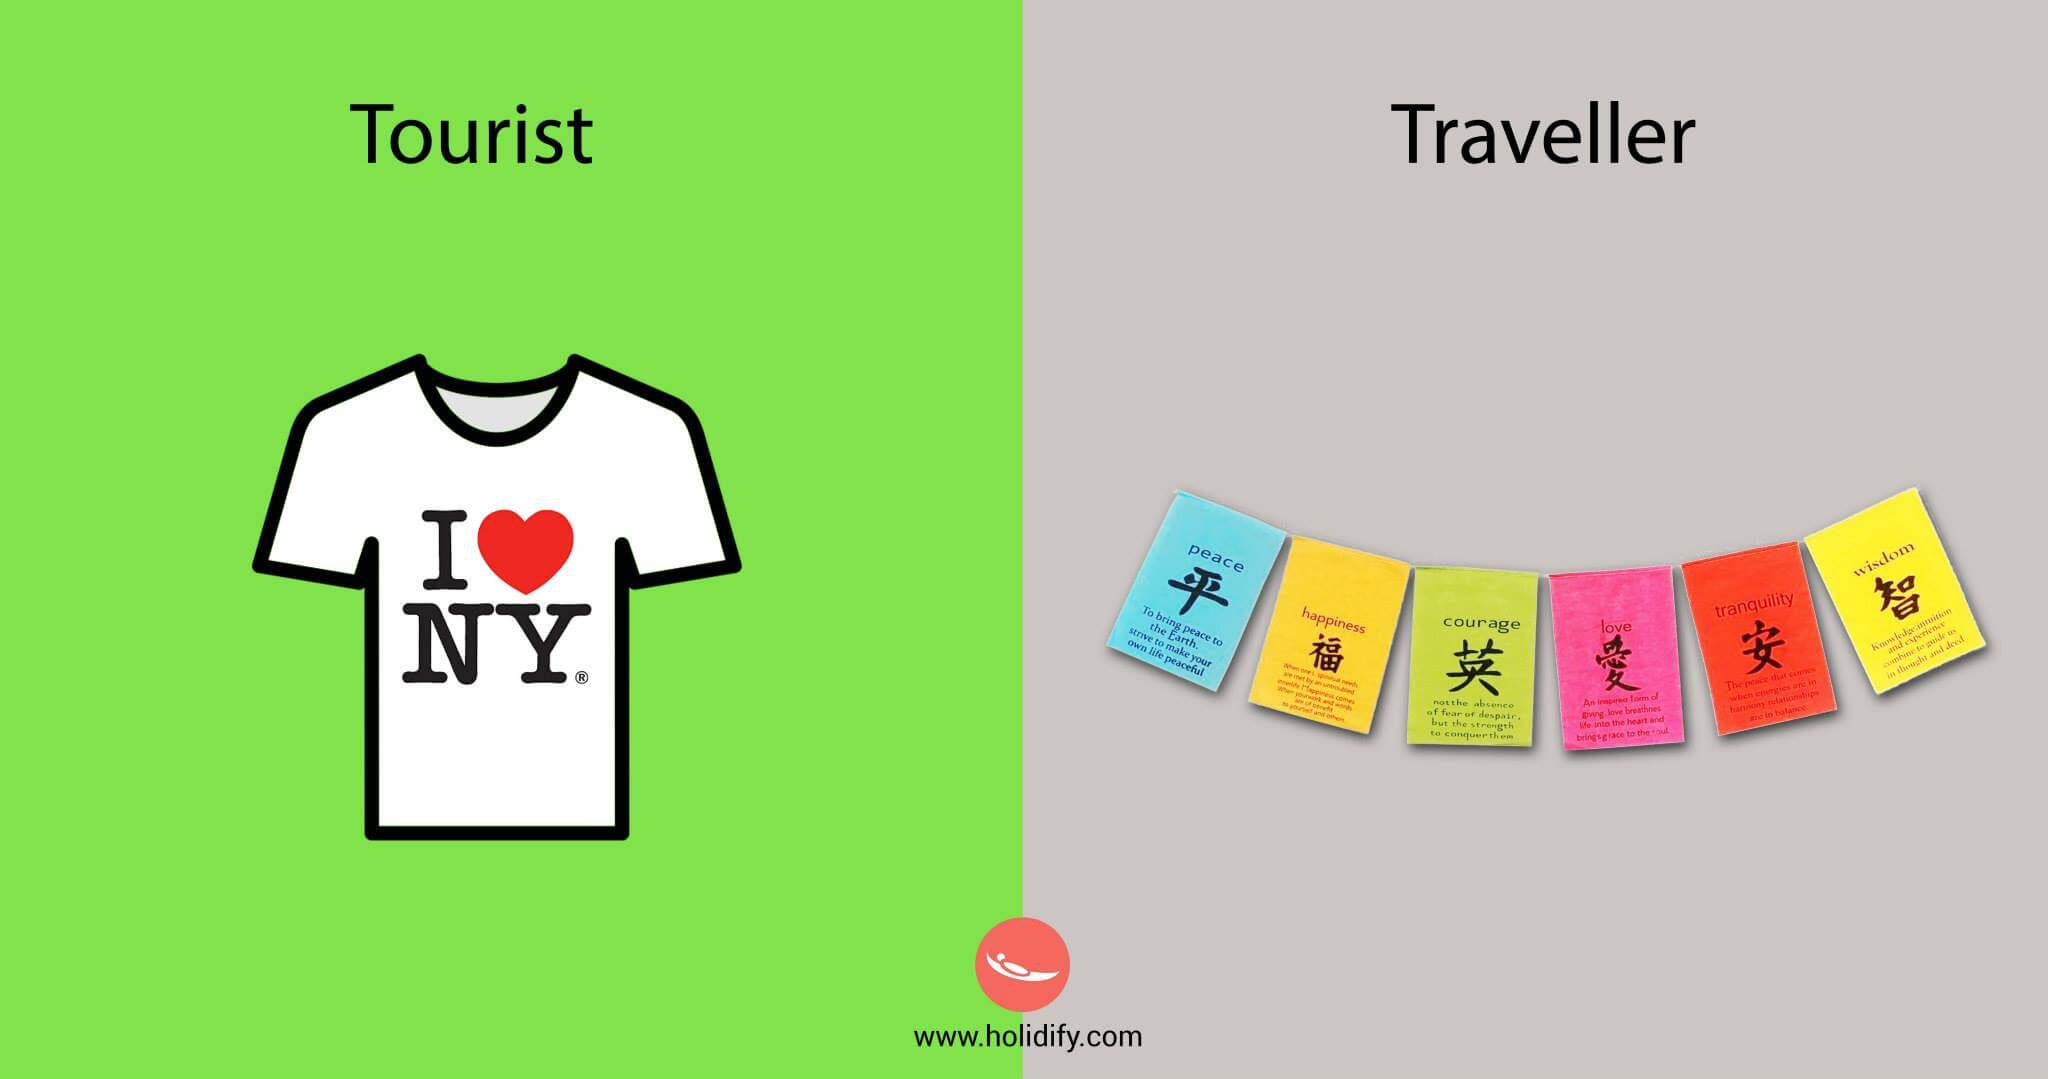 tourist-vs-traveller-freeyork-3